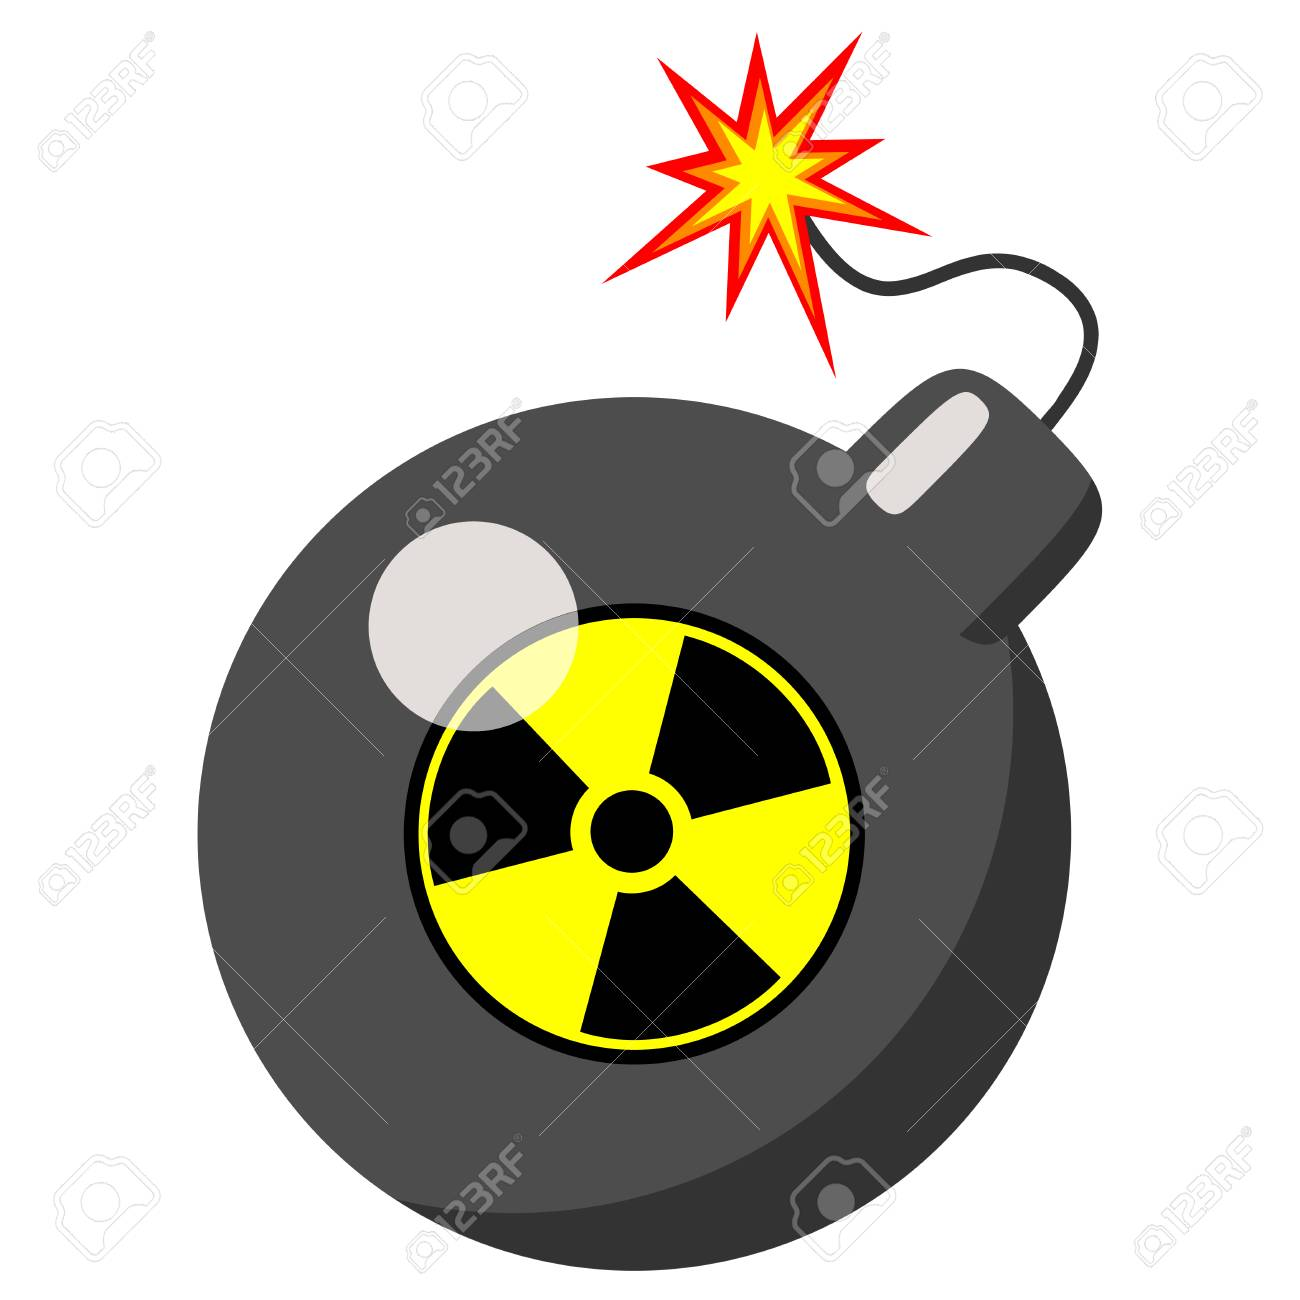 Bomb clipart bombshell, Bomb bombshell Transparent FREE for download.